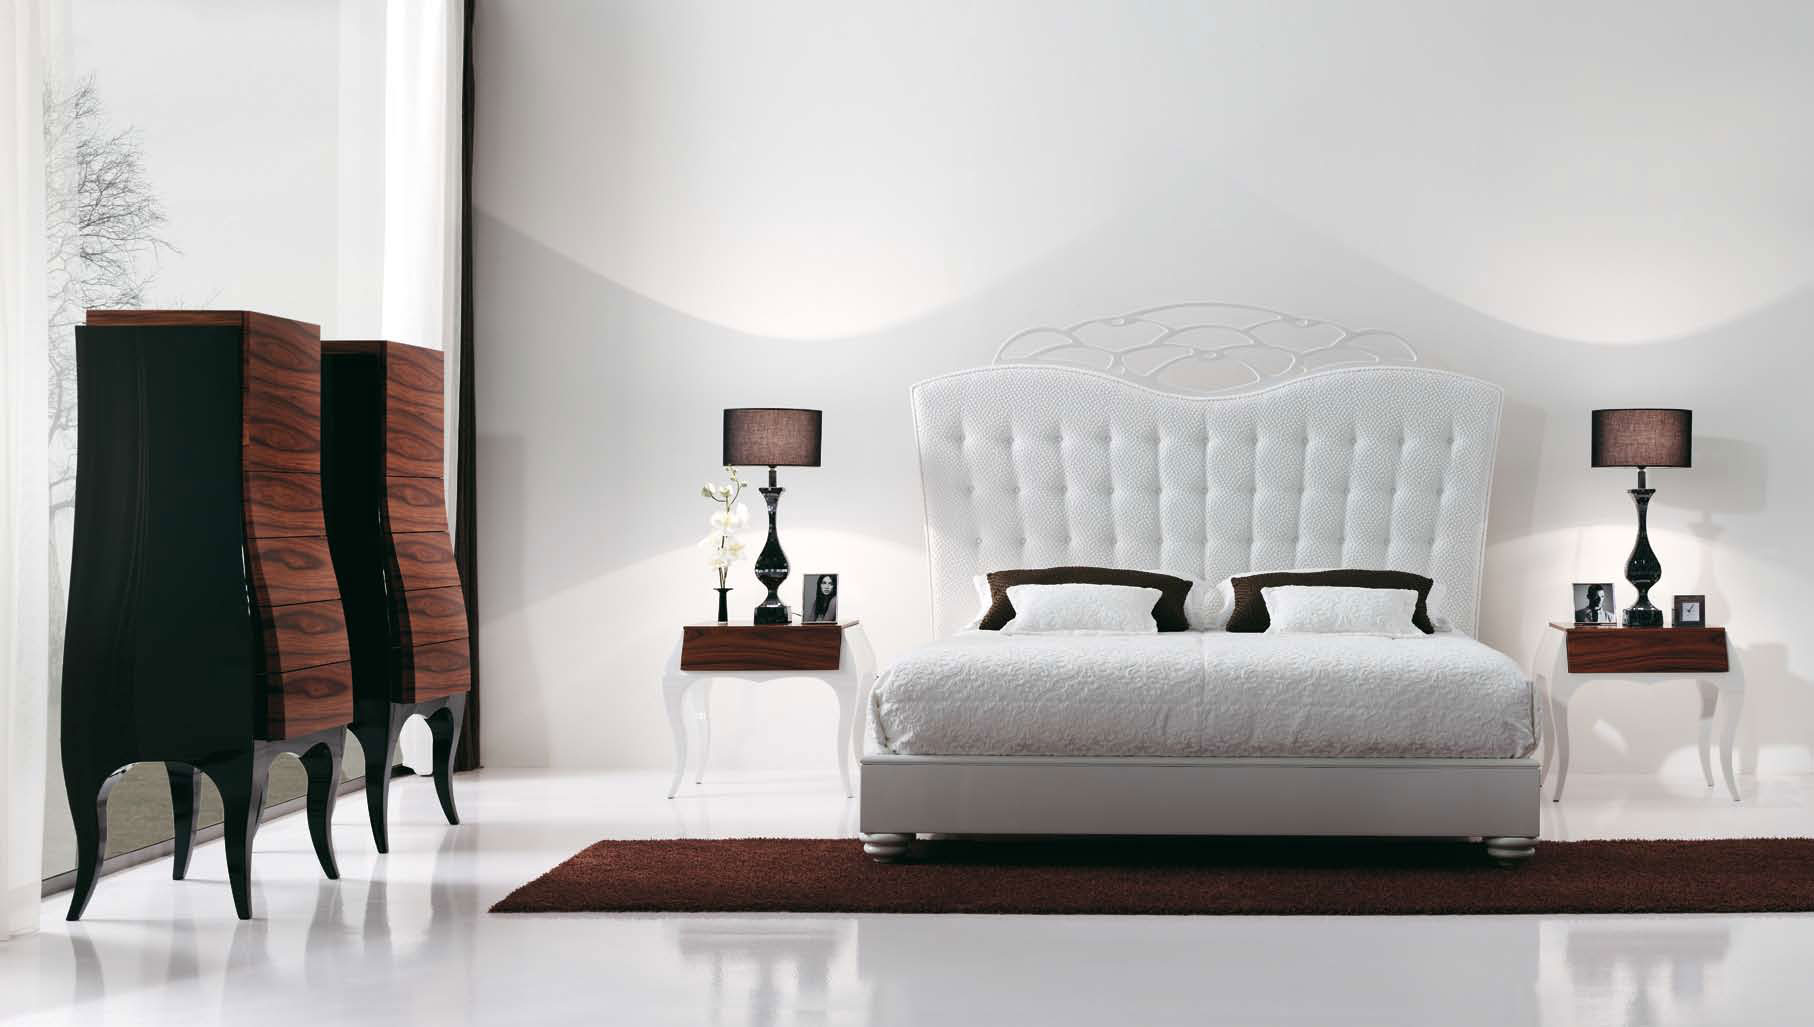 Amazing White Bedroom Furniture Design Ideas 1814 x 1027 · 118 kB · jpeg